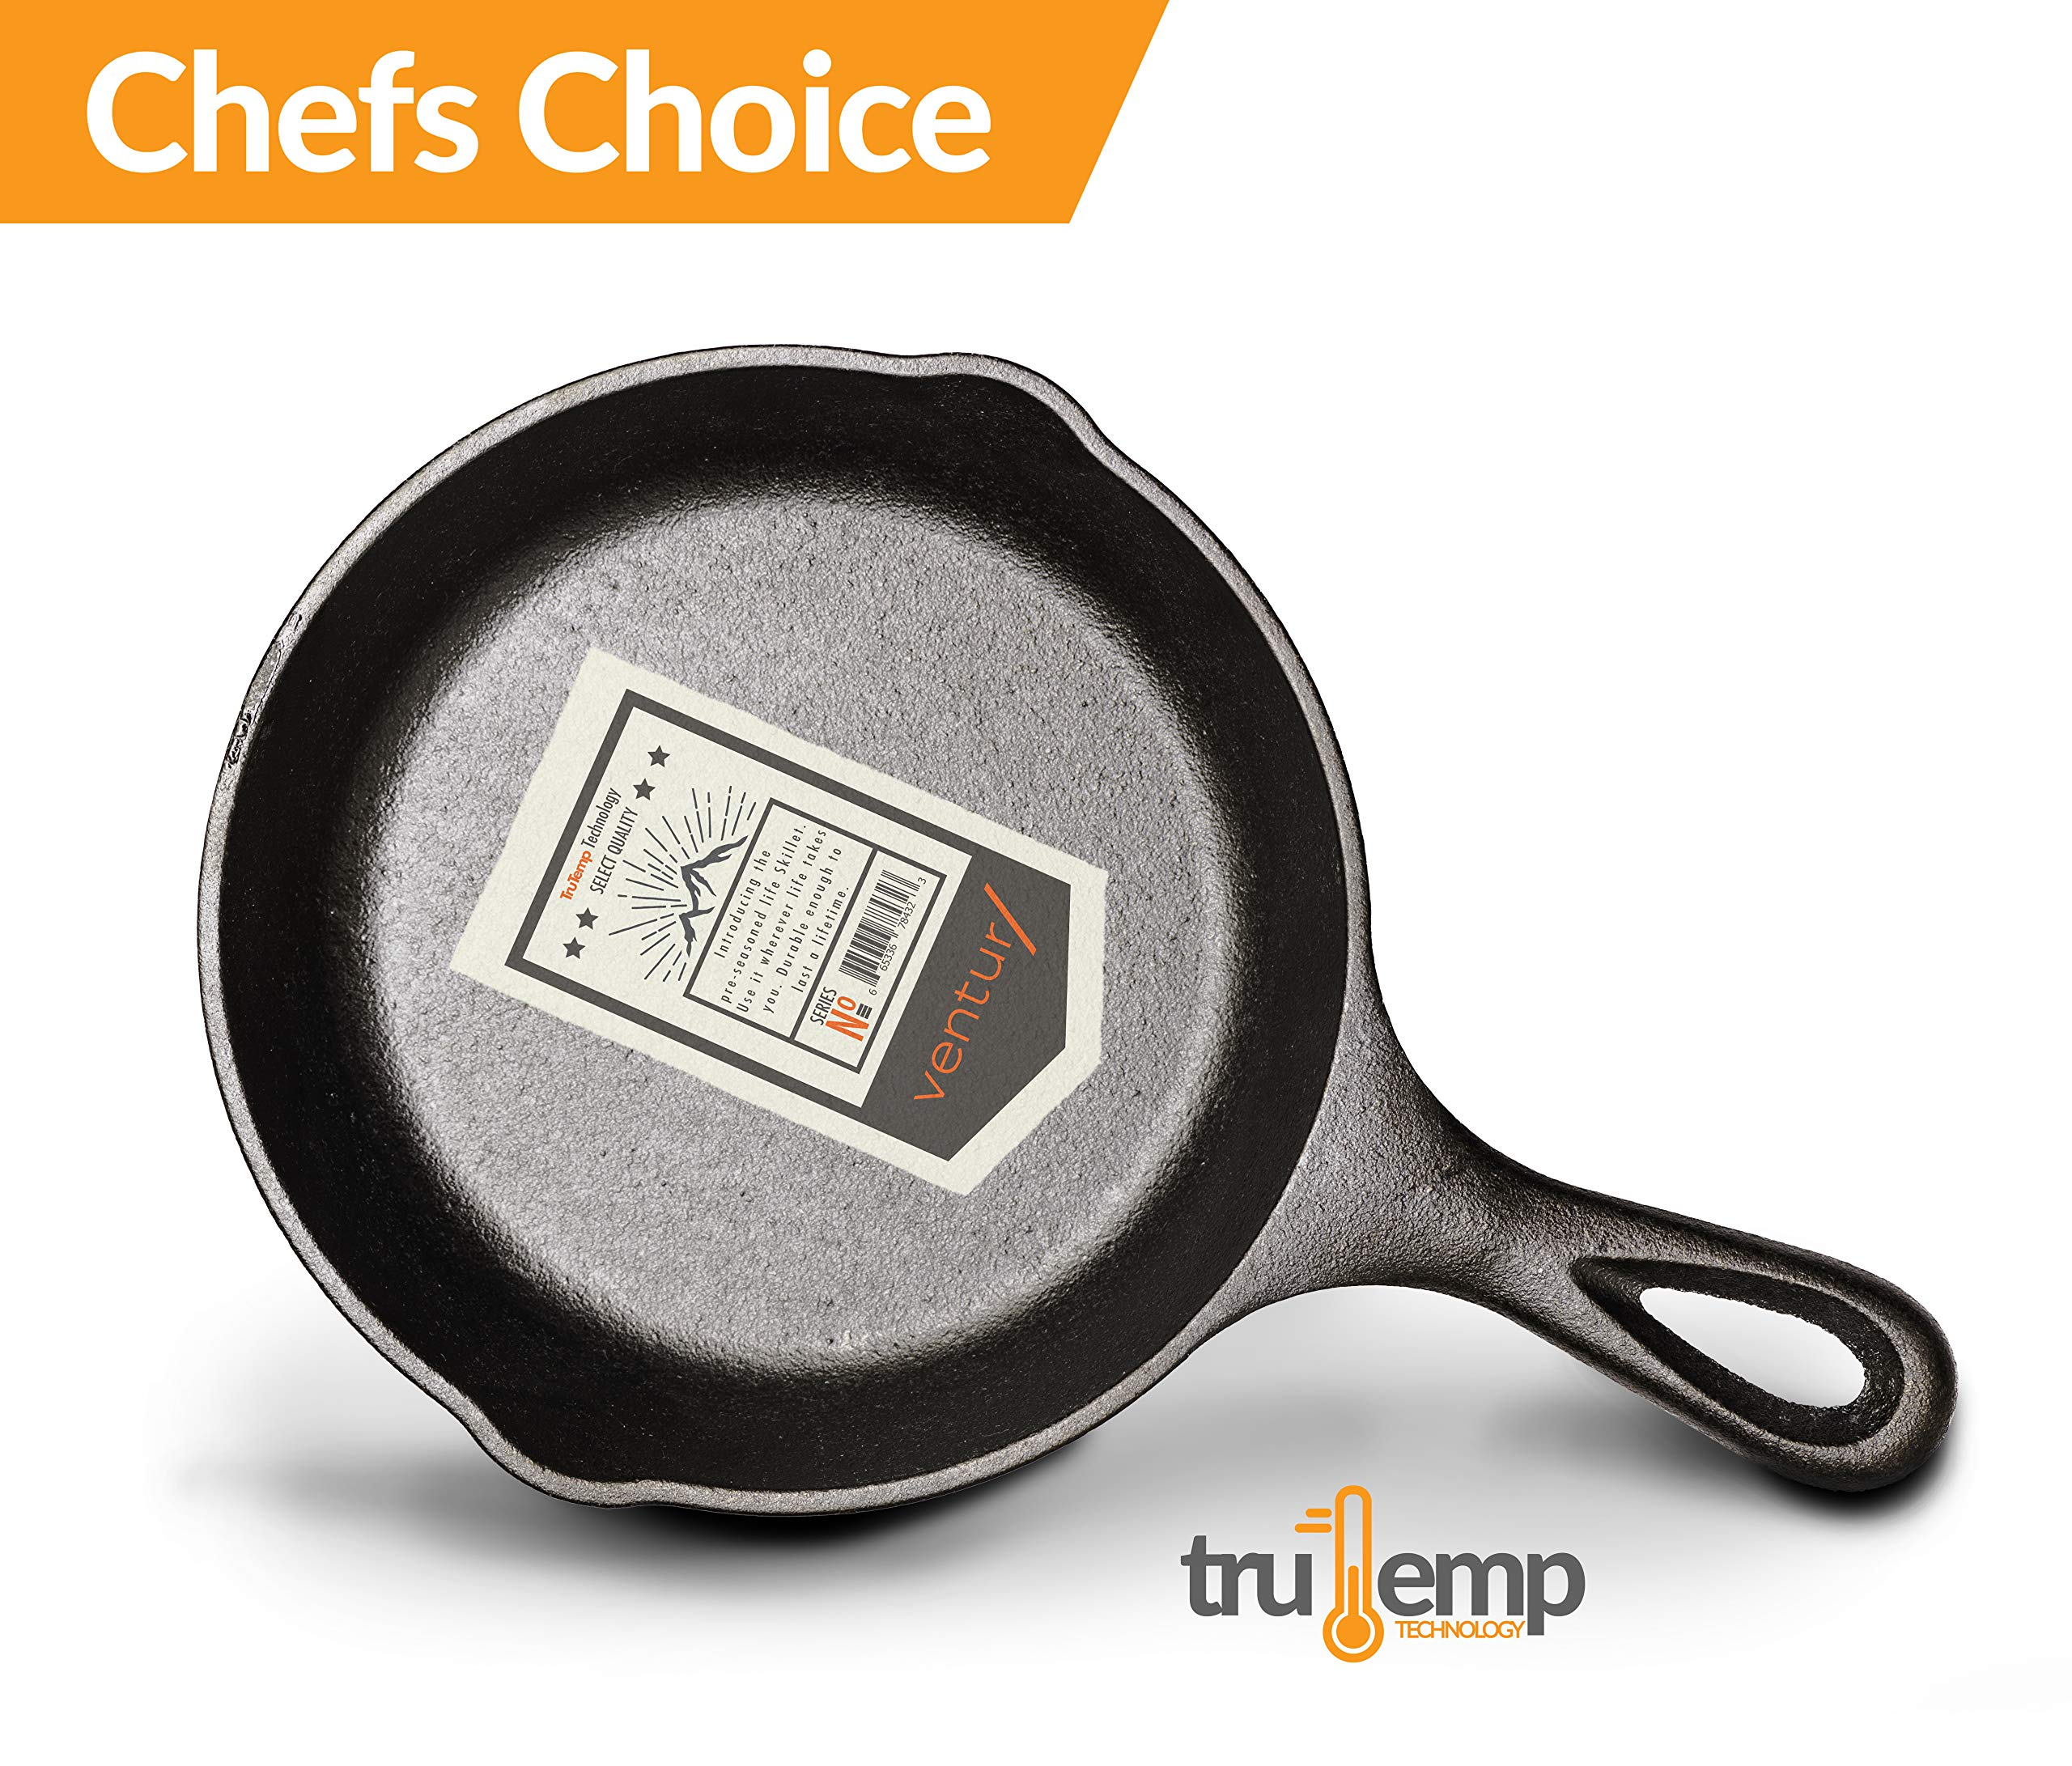 Ventur/ 8 Inch Mini Cast Iron Skillet Pre-Seasoned with TruTemp Technology   Indoor and Outdoor Use   Grill, Stovetop, Induction Safe